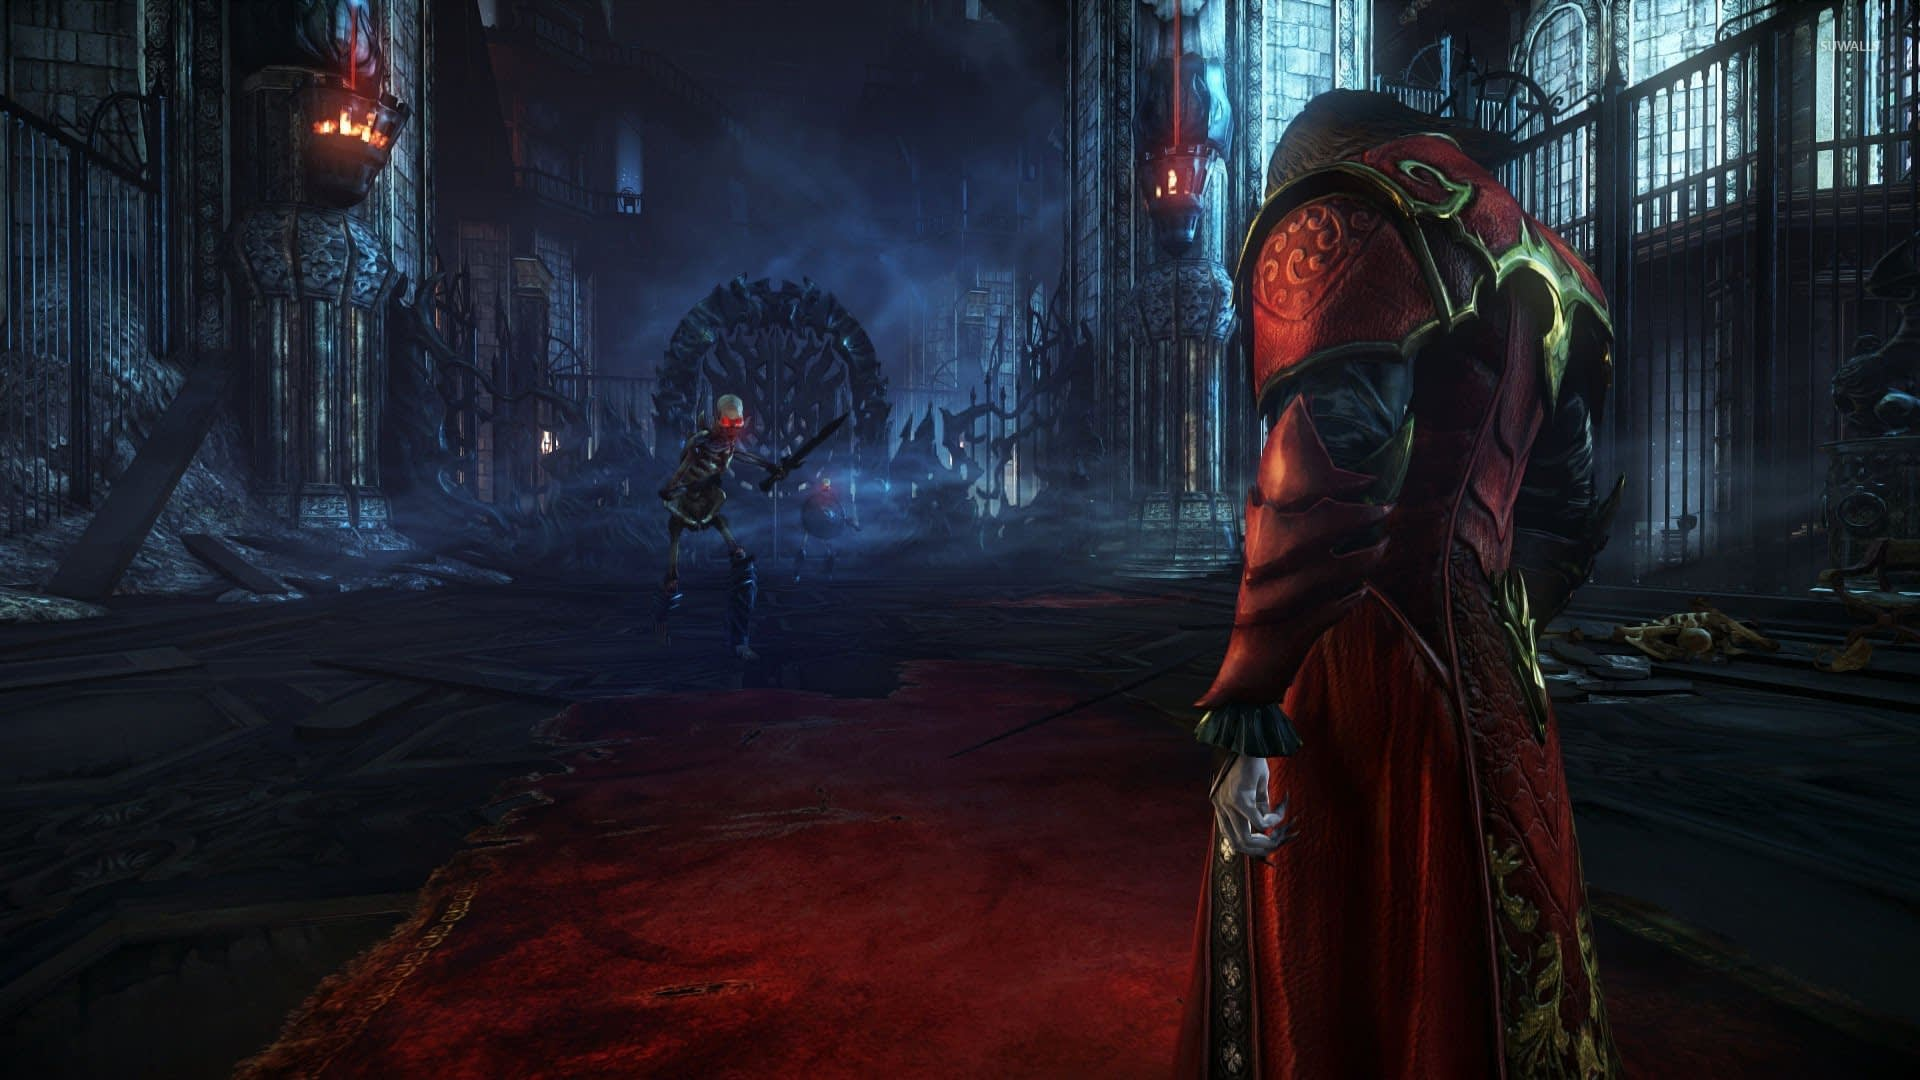 Lords of shadow 2 artwork